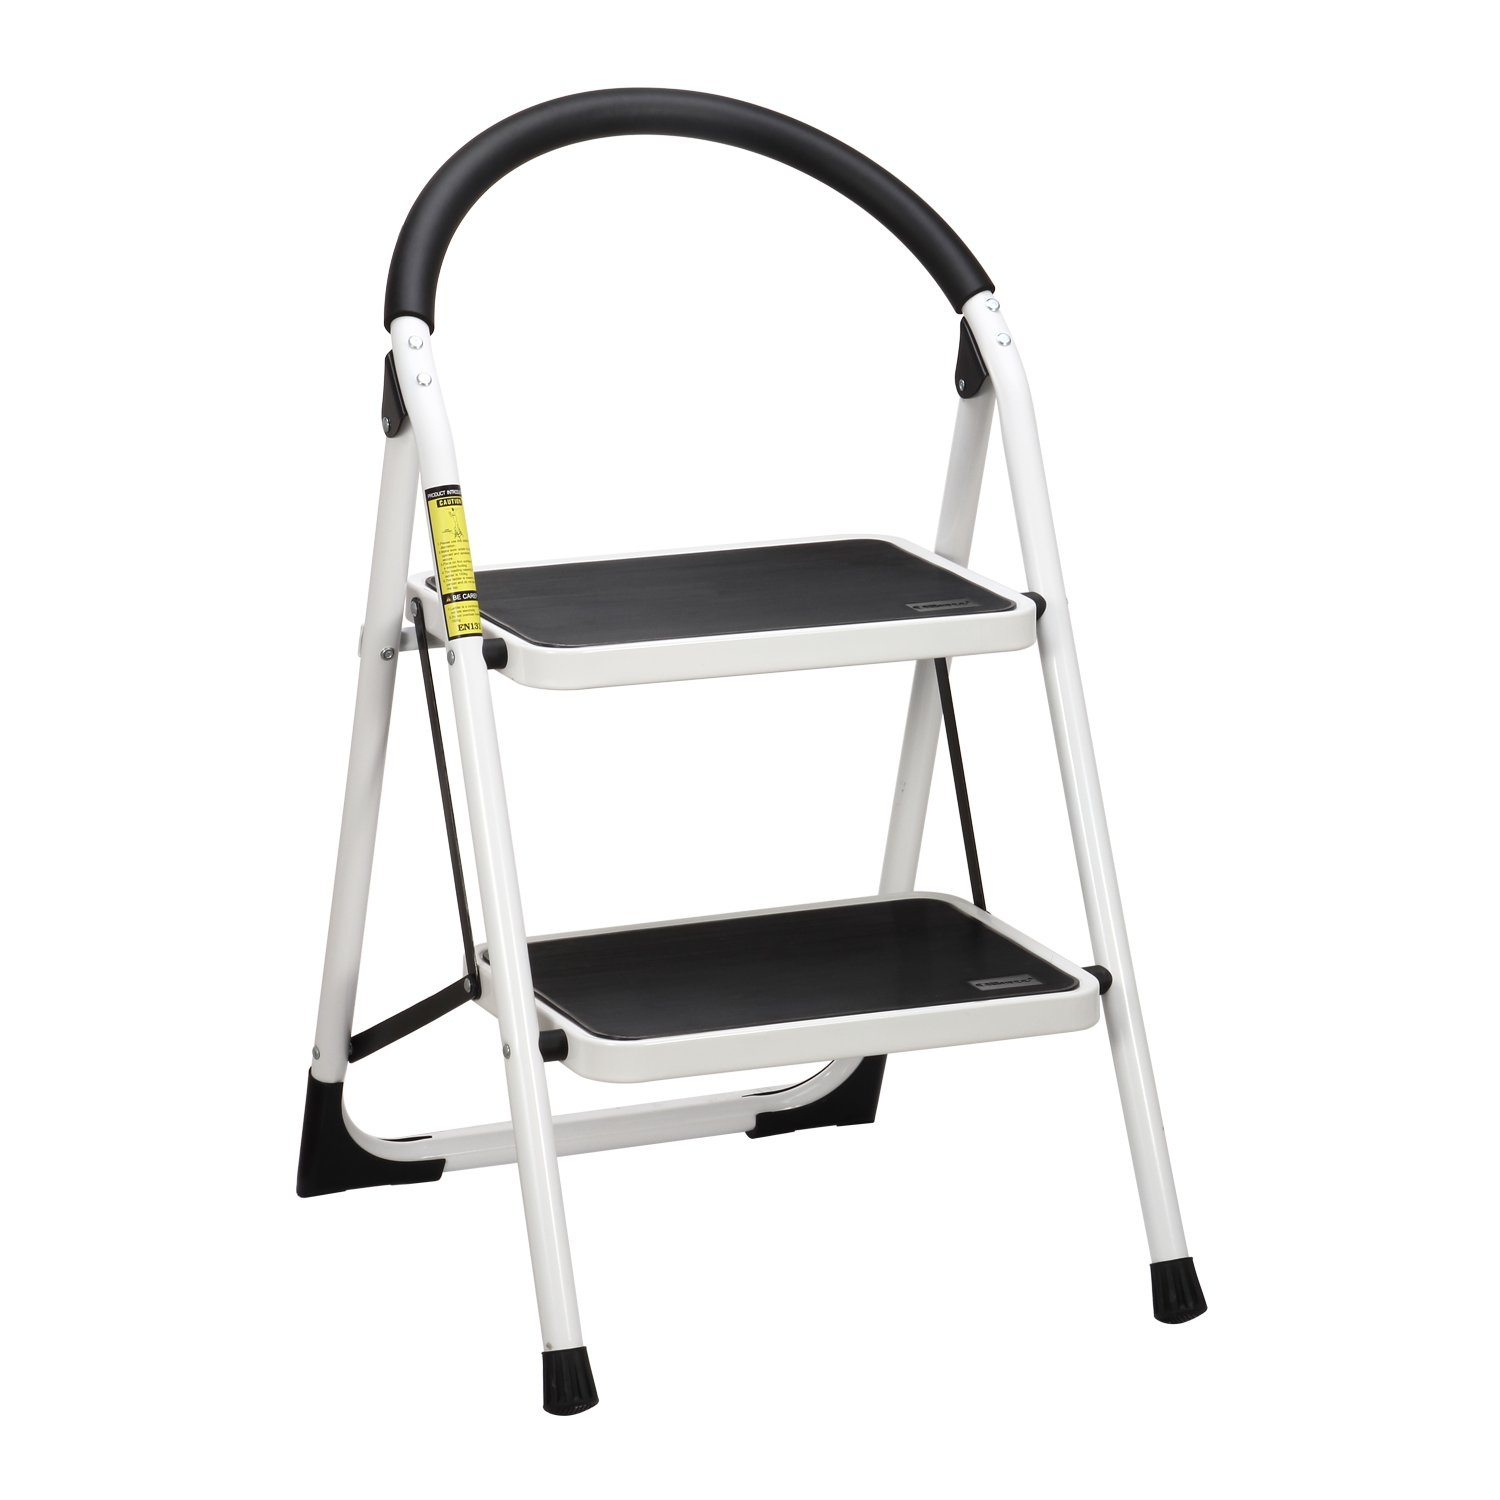 Ollieroo Step Stool EN131 Steel Folding 2 Step Ladder with Comfy Grip Handle Anti-slip Step Mon-marring Feet 330-pound Capacity White by Ollieroo